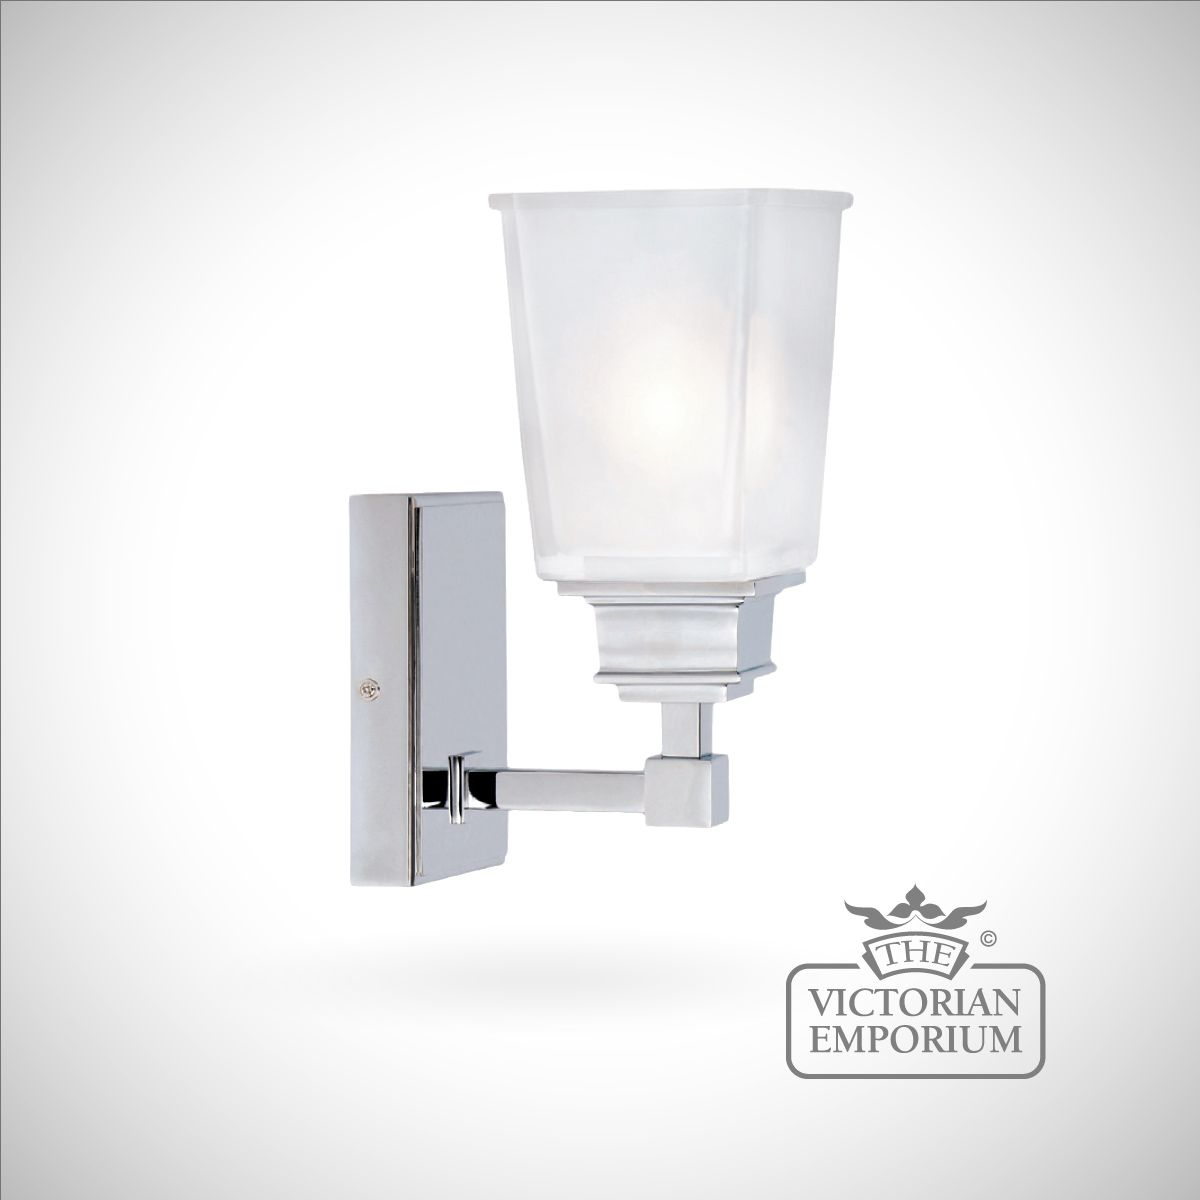 Square Chrome Wall Lights : Square chrome wall light Lights